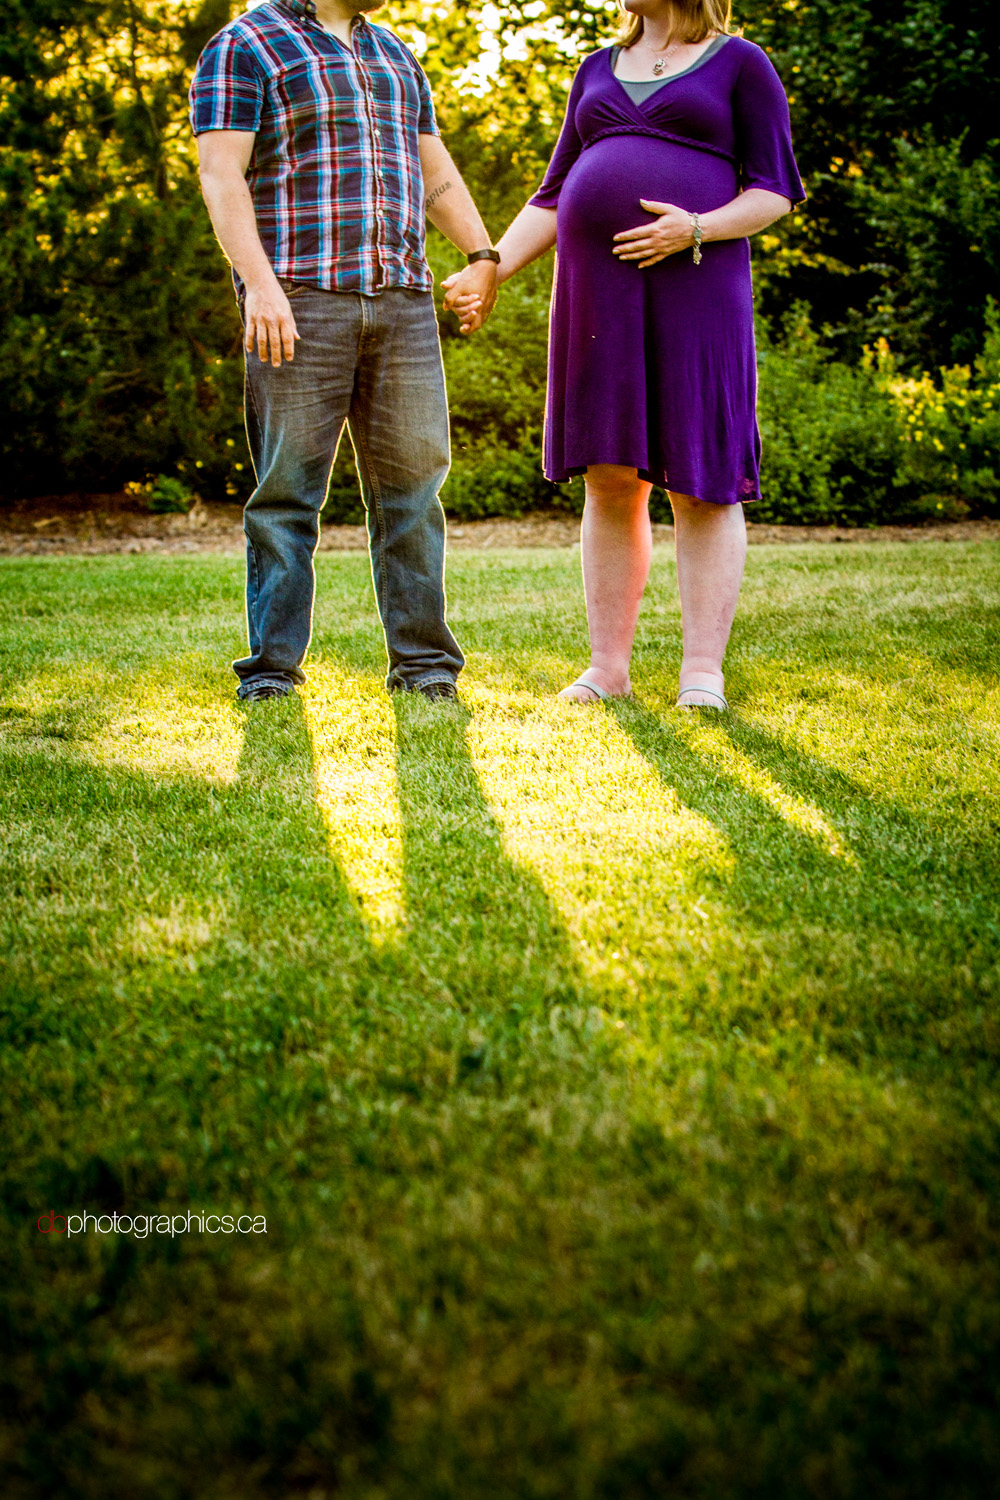 Elisabeth & Trent - Maternity Session - 20140707 - 0034.jpg